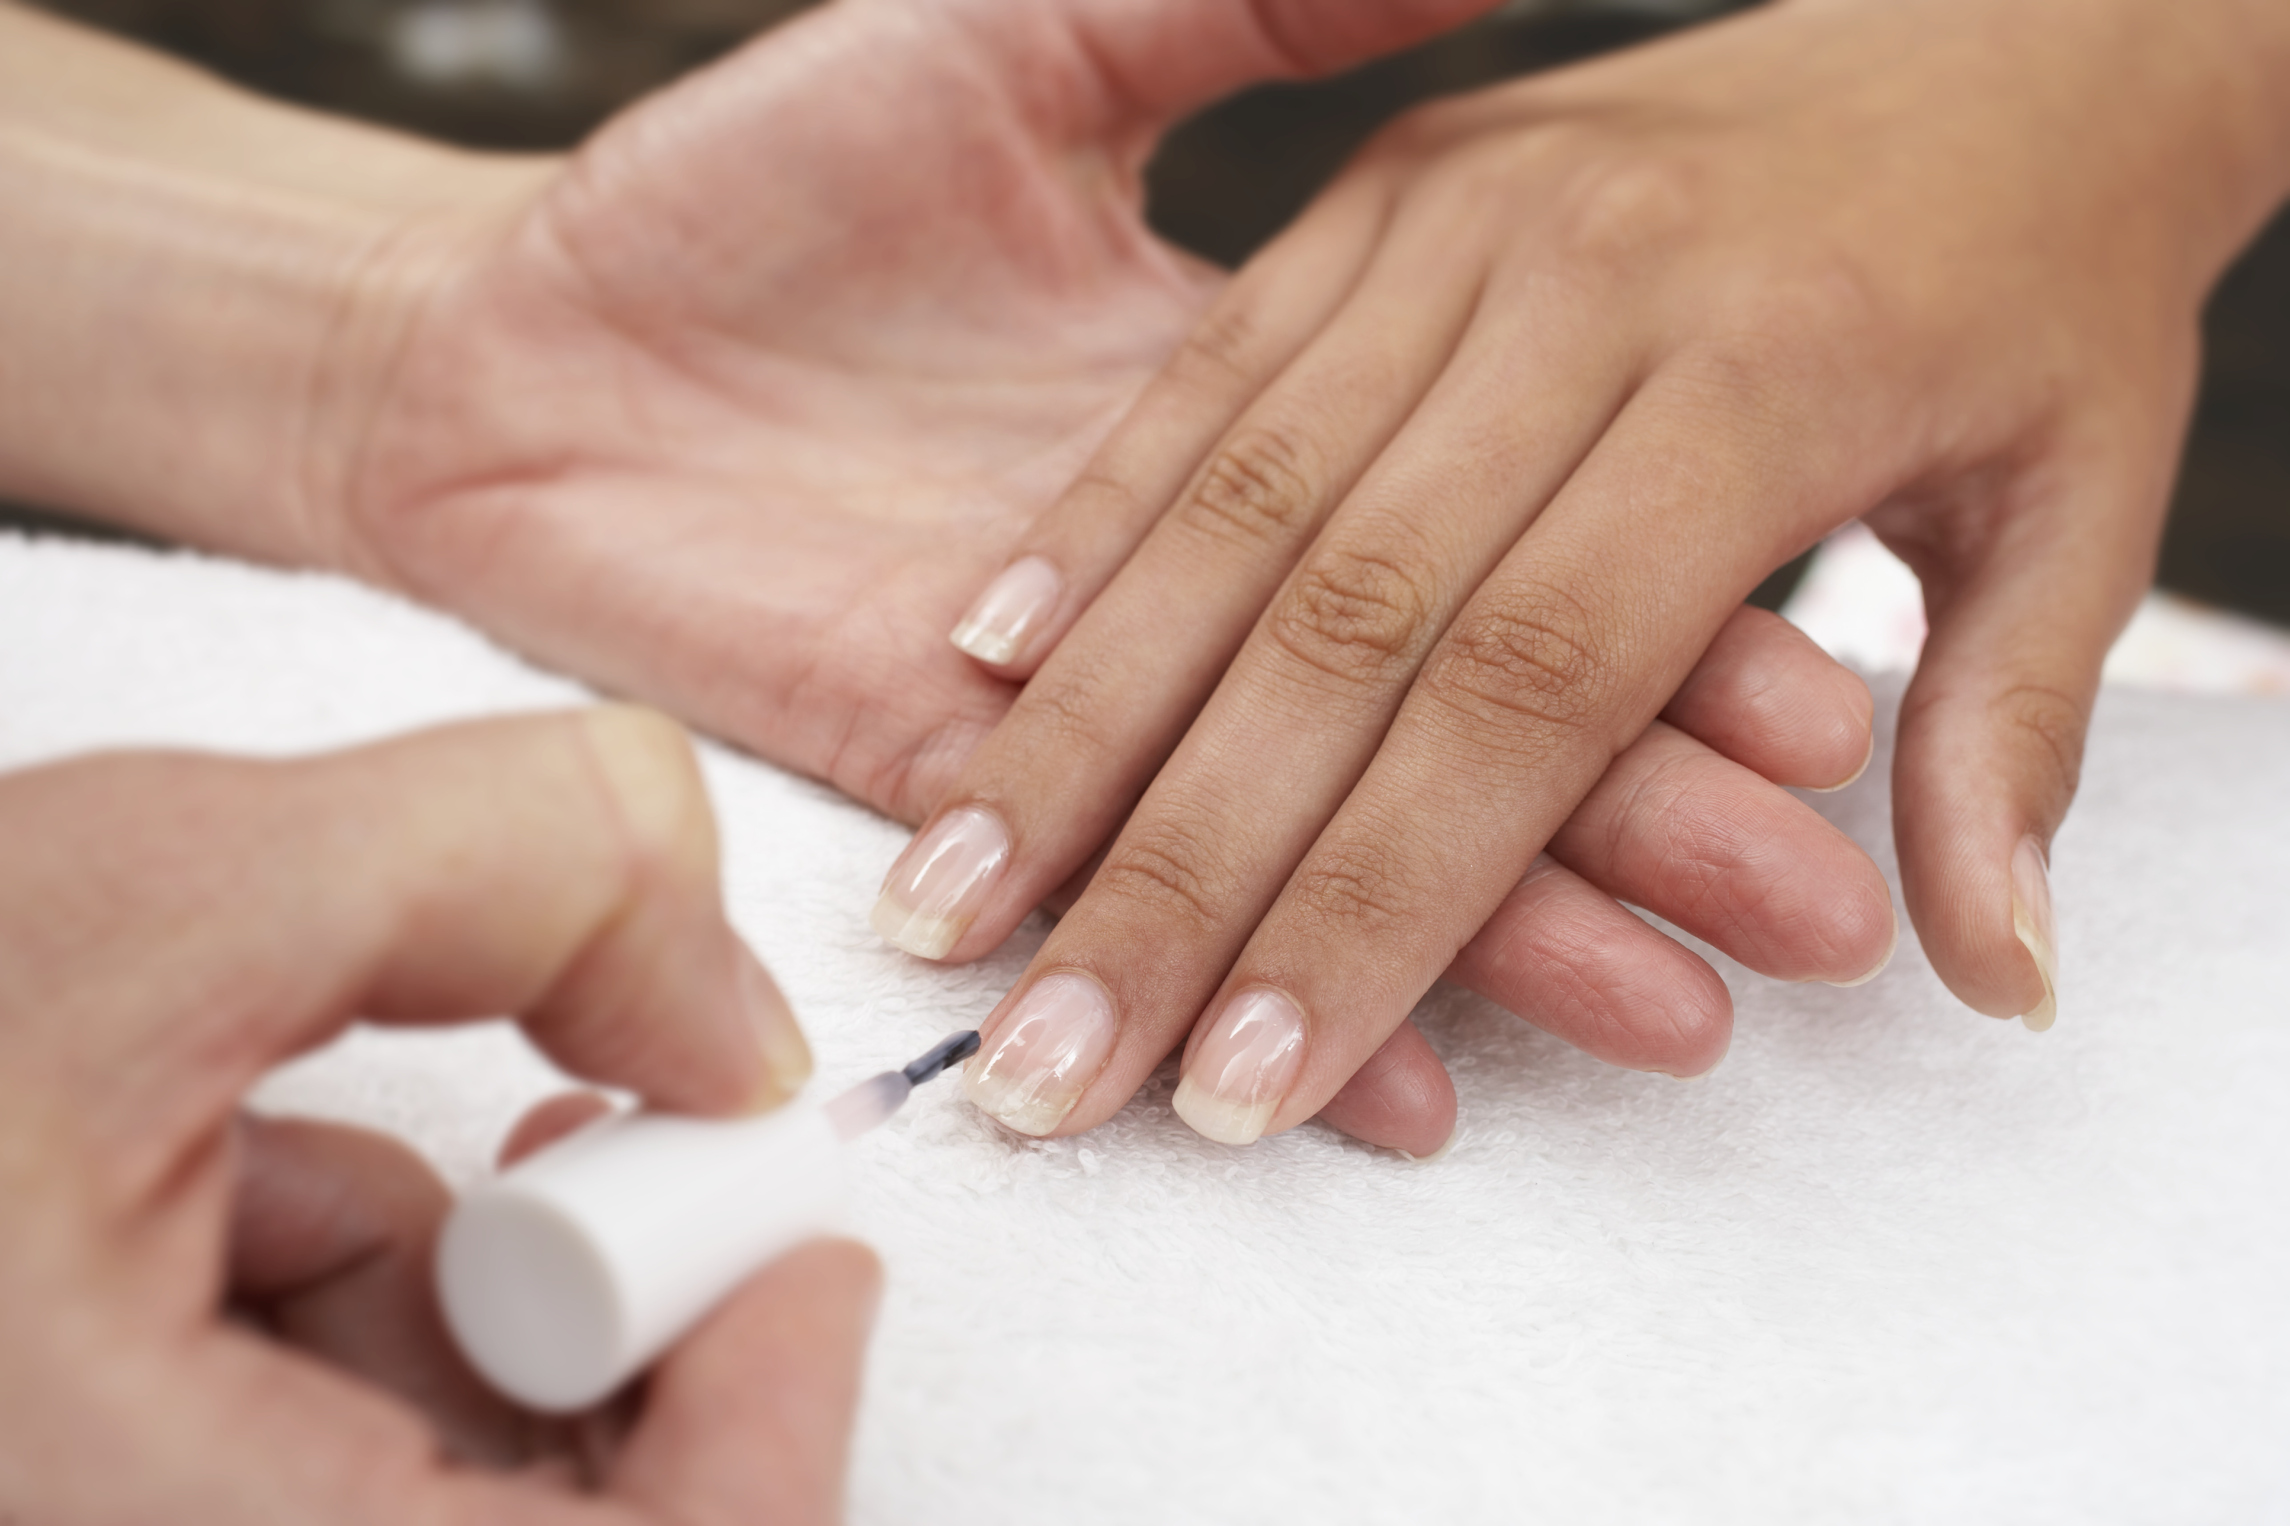 What Causes Strong Nails? | LIVESTRONG.COM